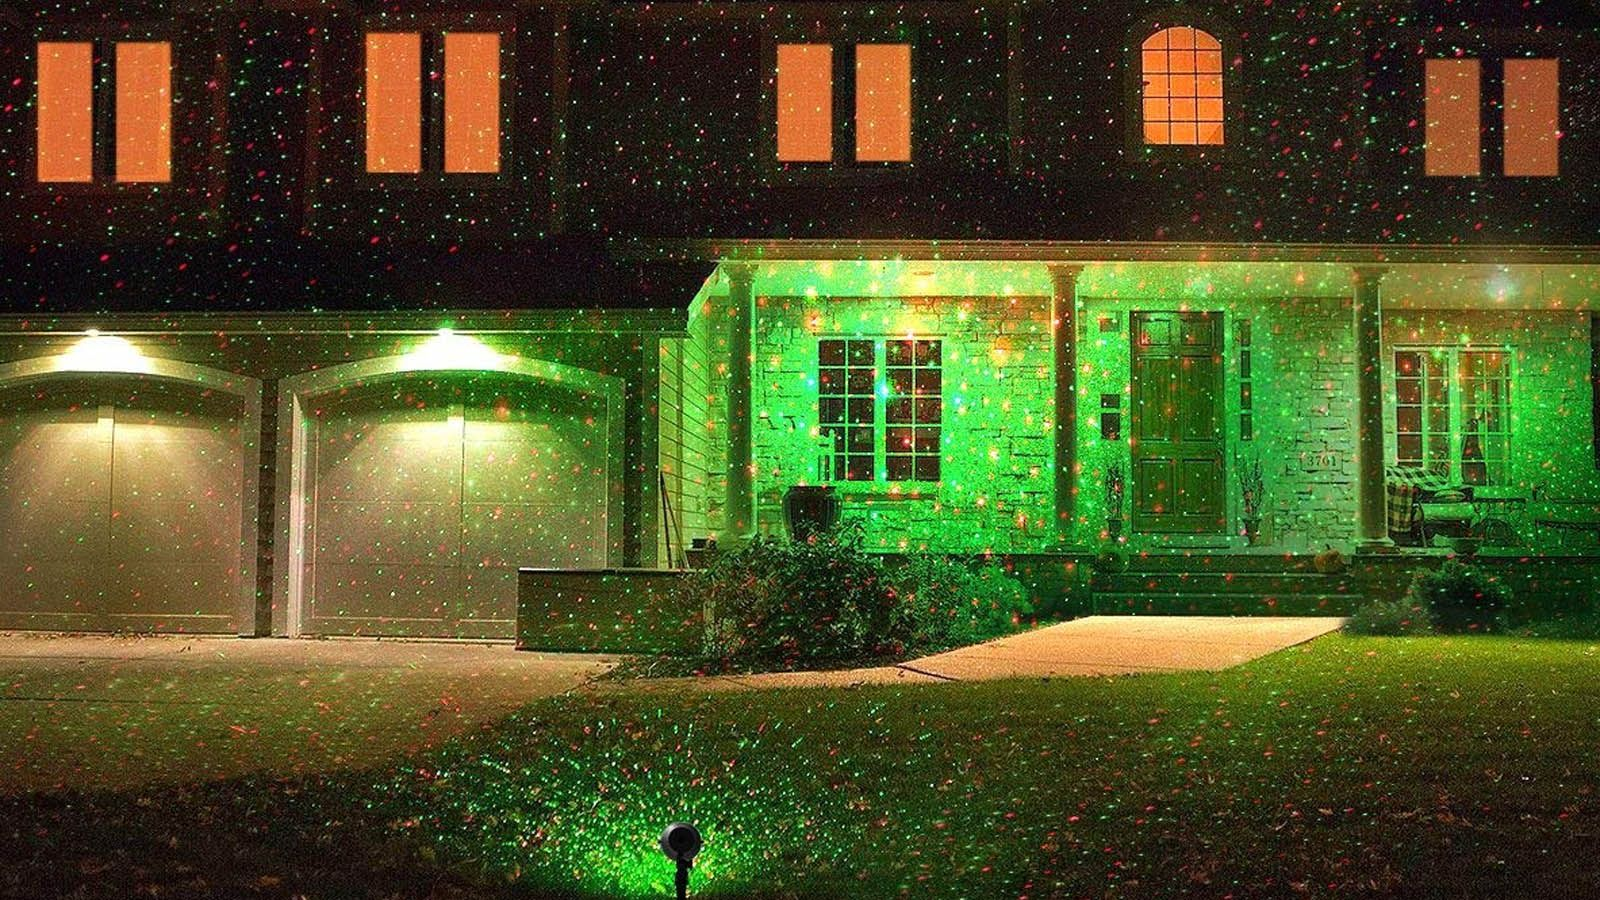 The Best Christmas Projectors And Laser Lights For Illuminating Your House Led Outdoor Lighting Christmas Projector Laser Lights